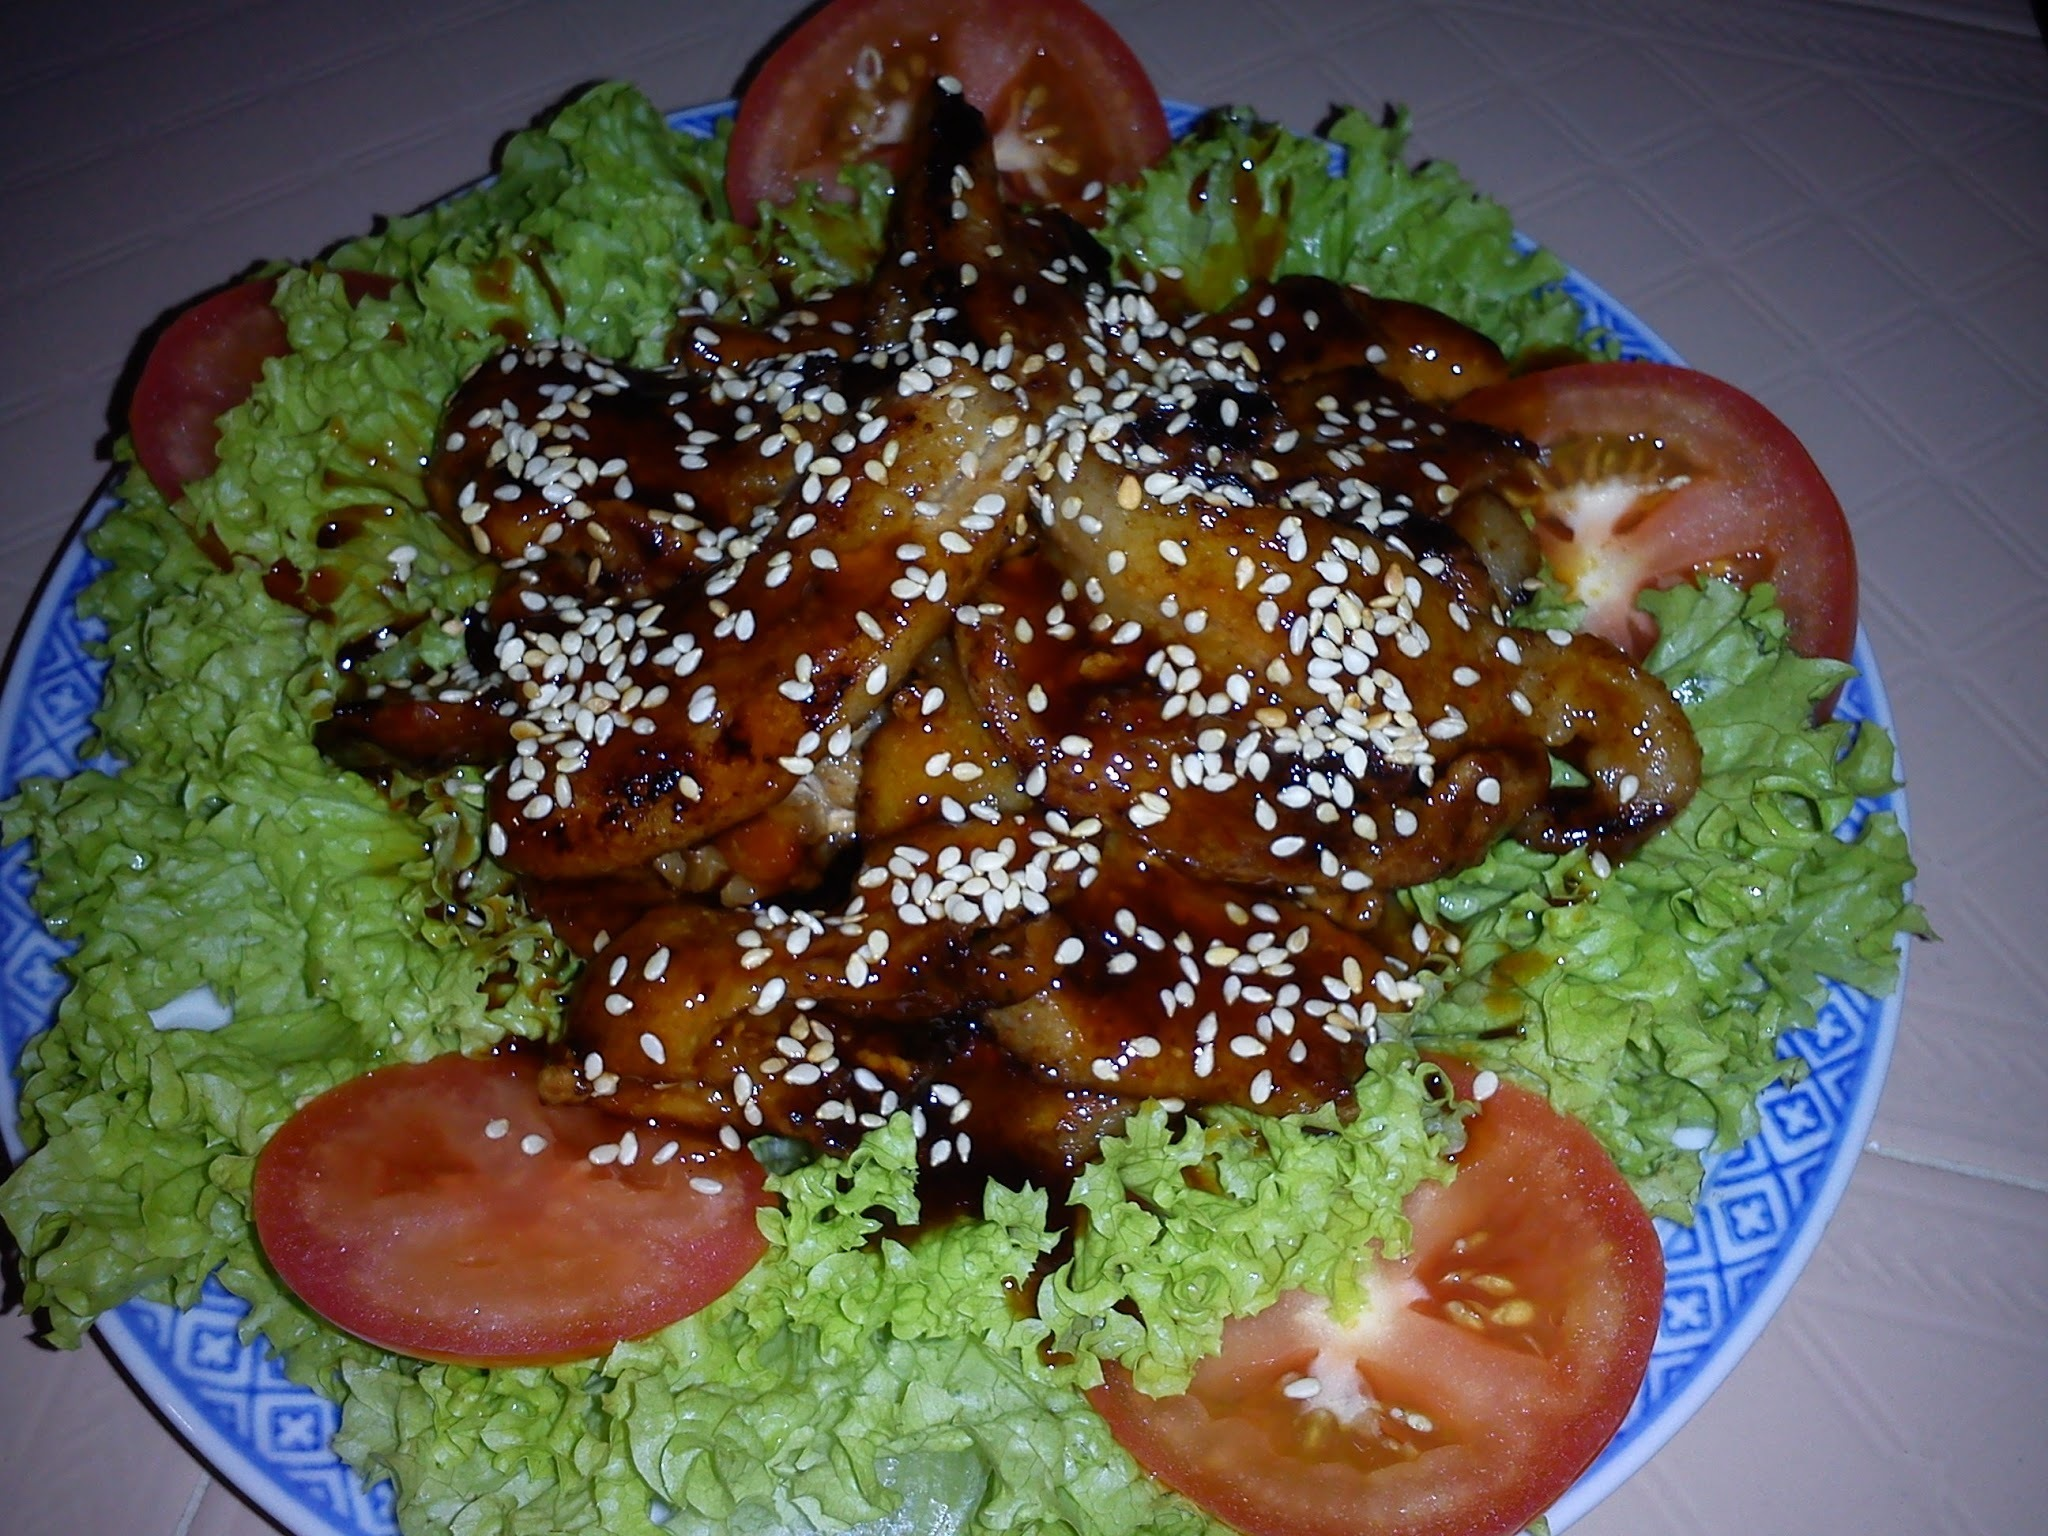 EZCR#42  - FRIED STREAKY PORK BELLY SALAD